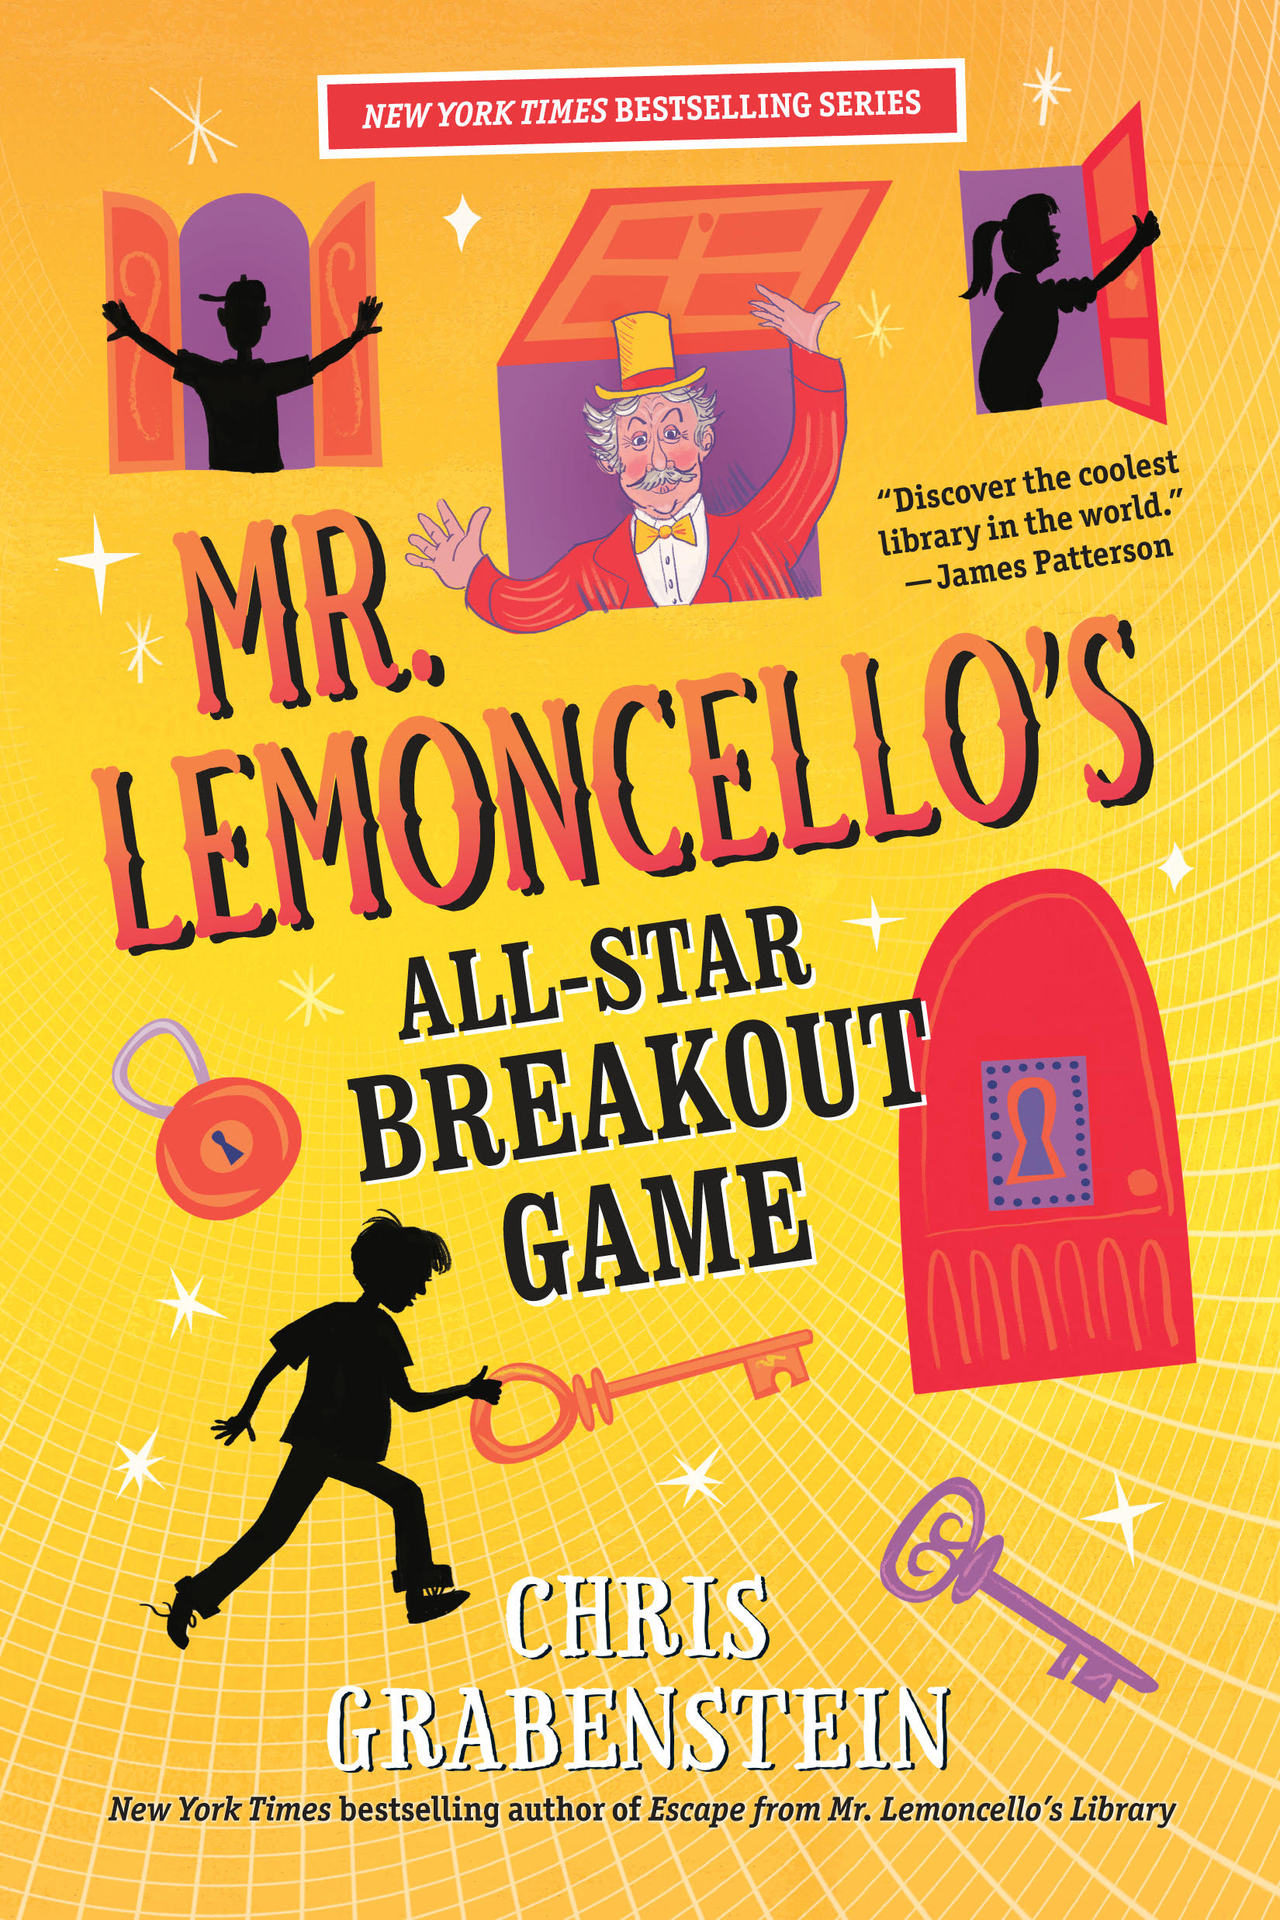 Lemoncellos all star press